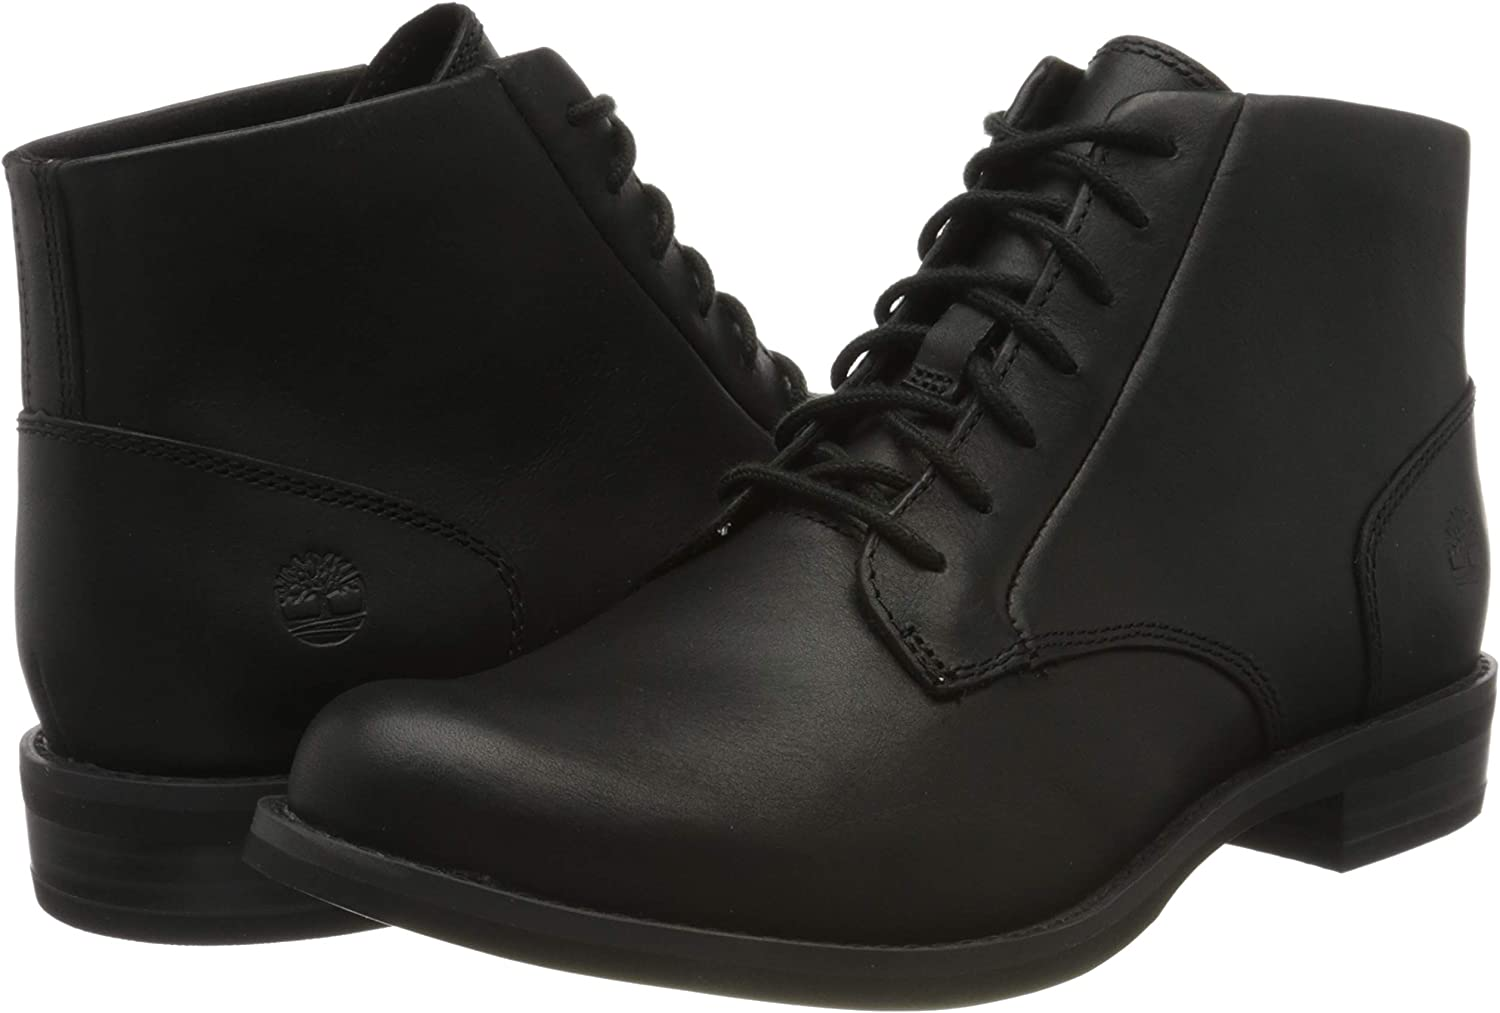 Timberland Magby Mid Lace Up Bottes Femme